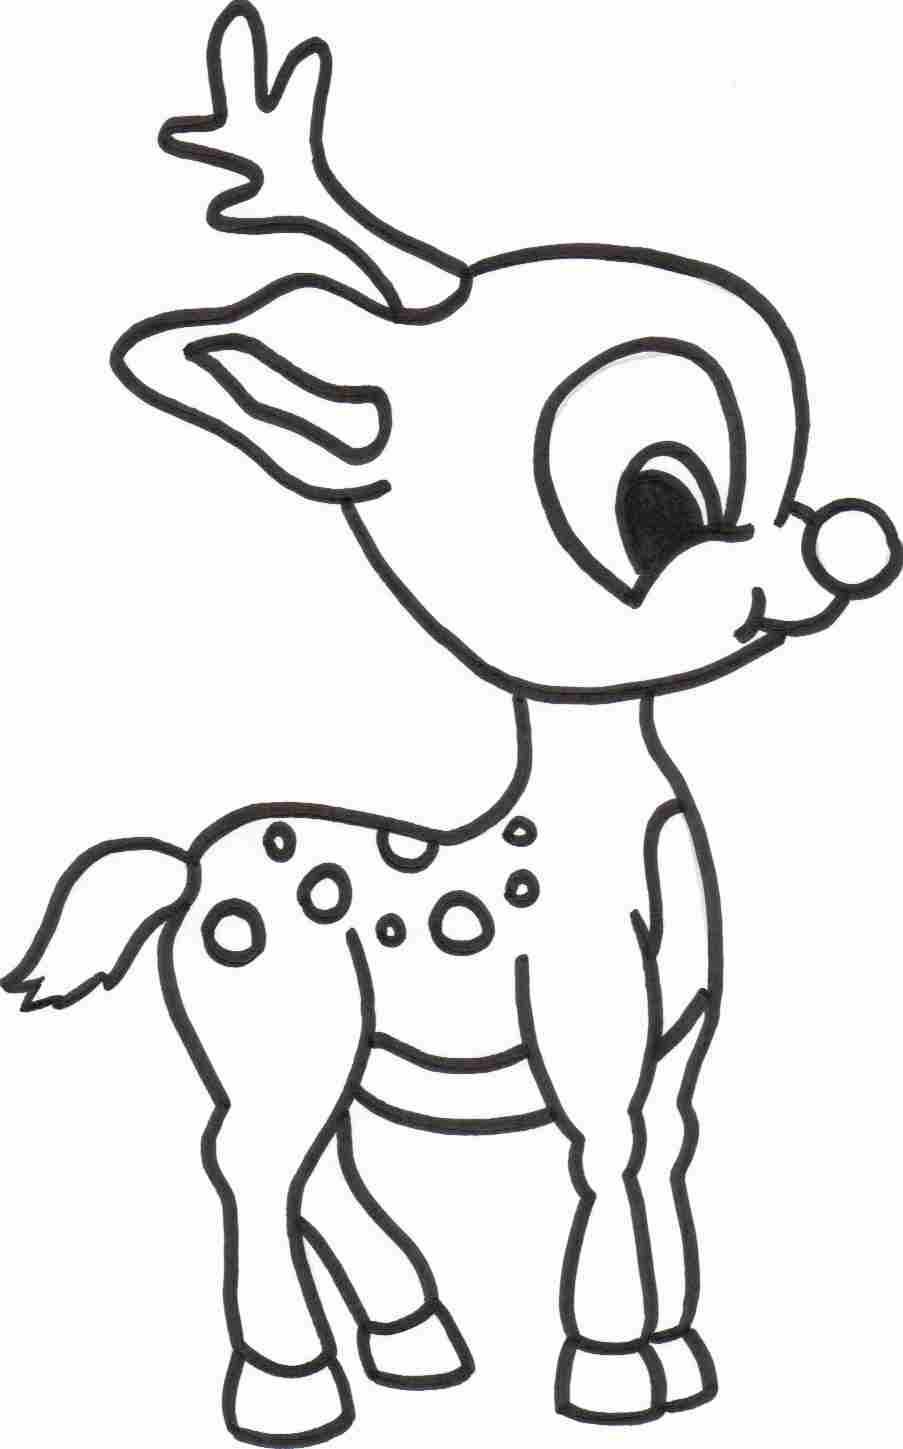 Cute Santa Claus Coloring Pages With Free Printable Reindeer For Kids Sketch Pinterest